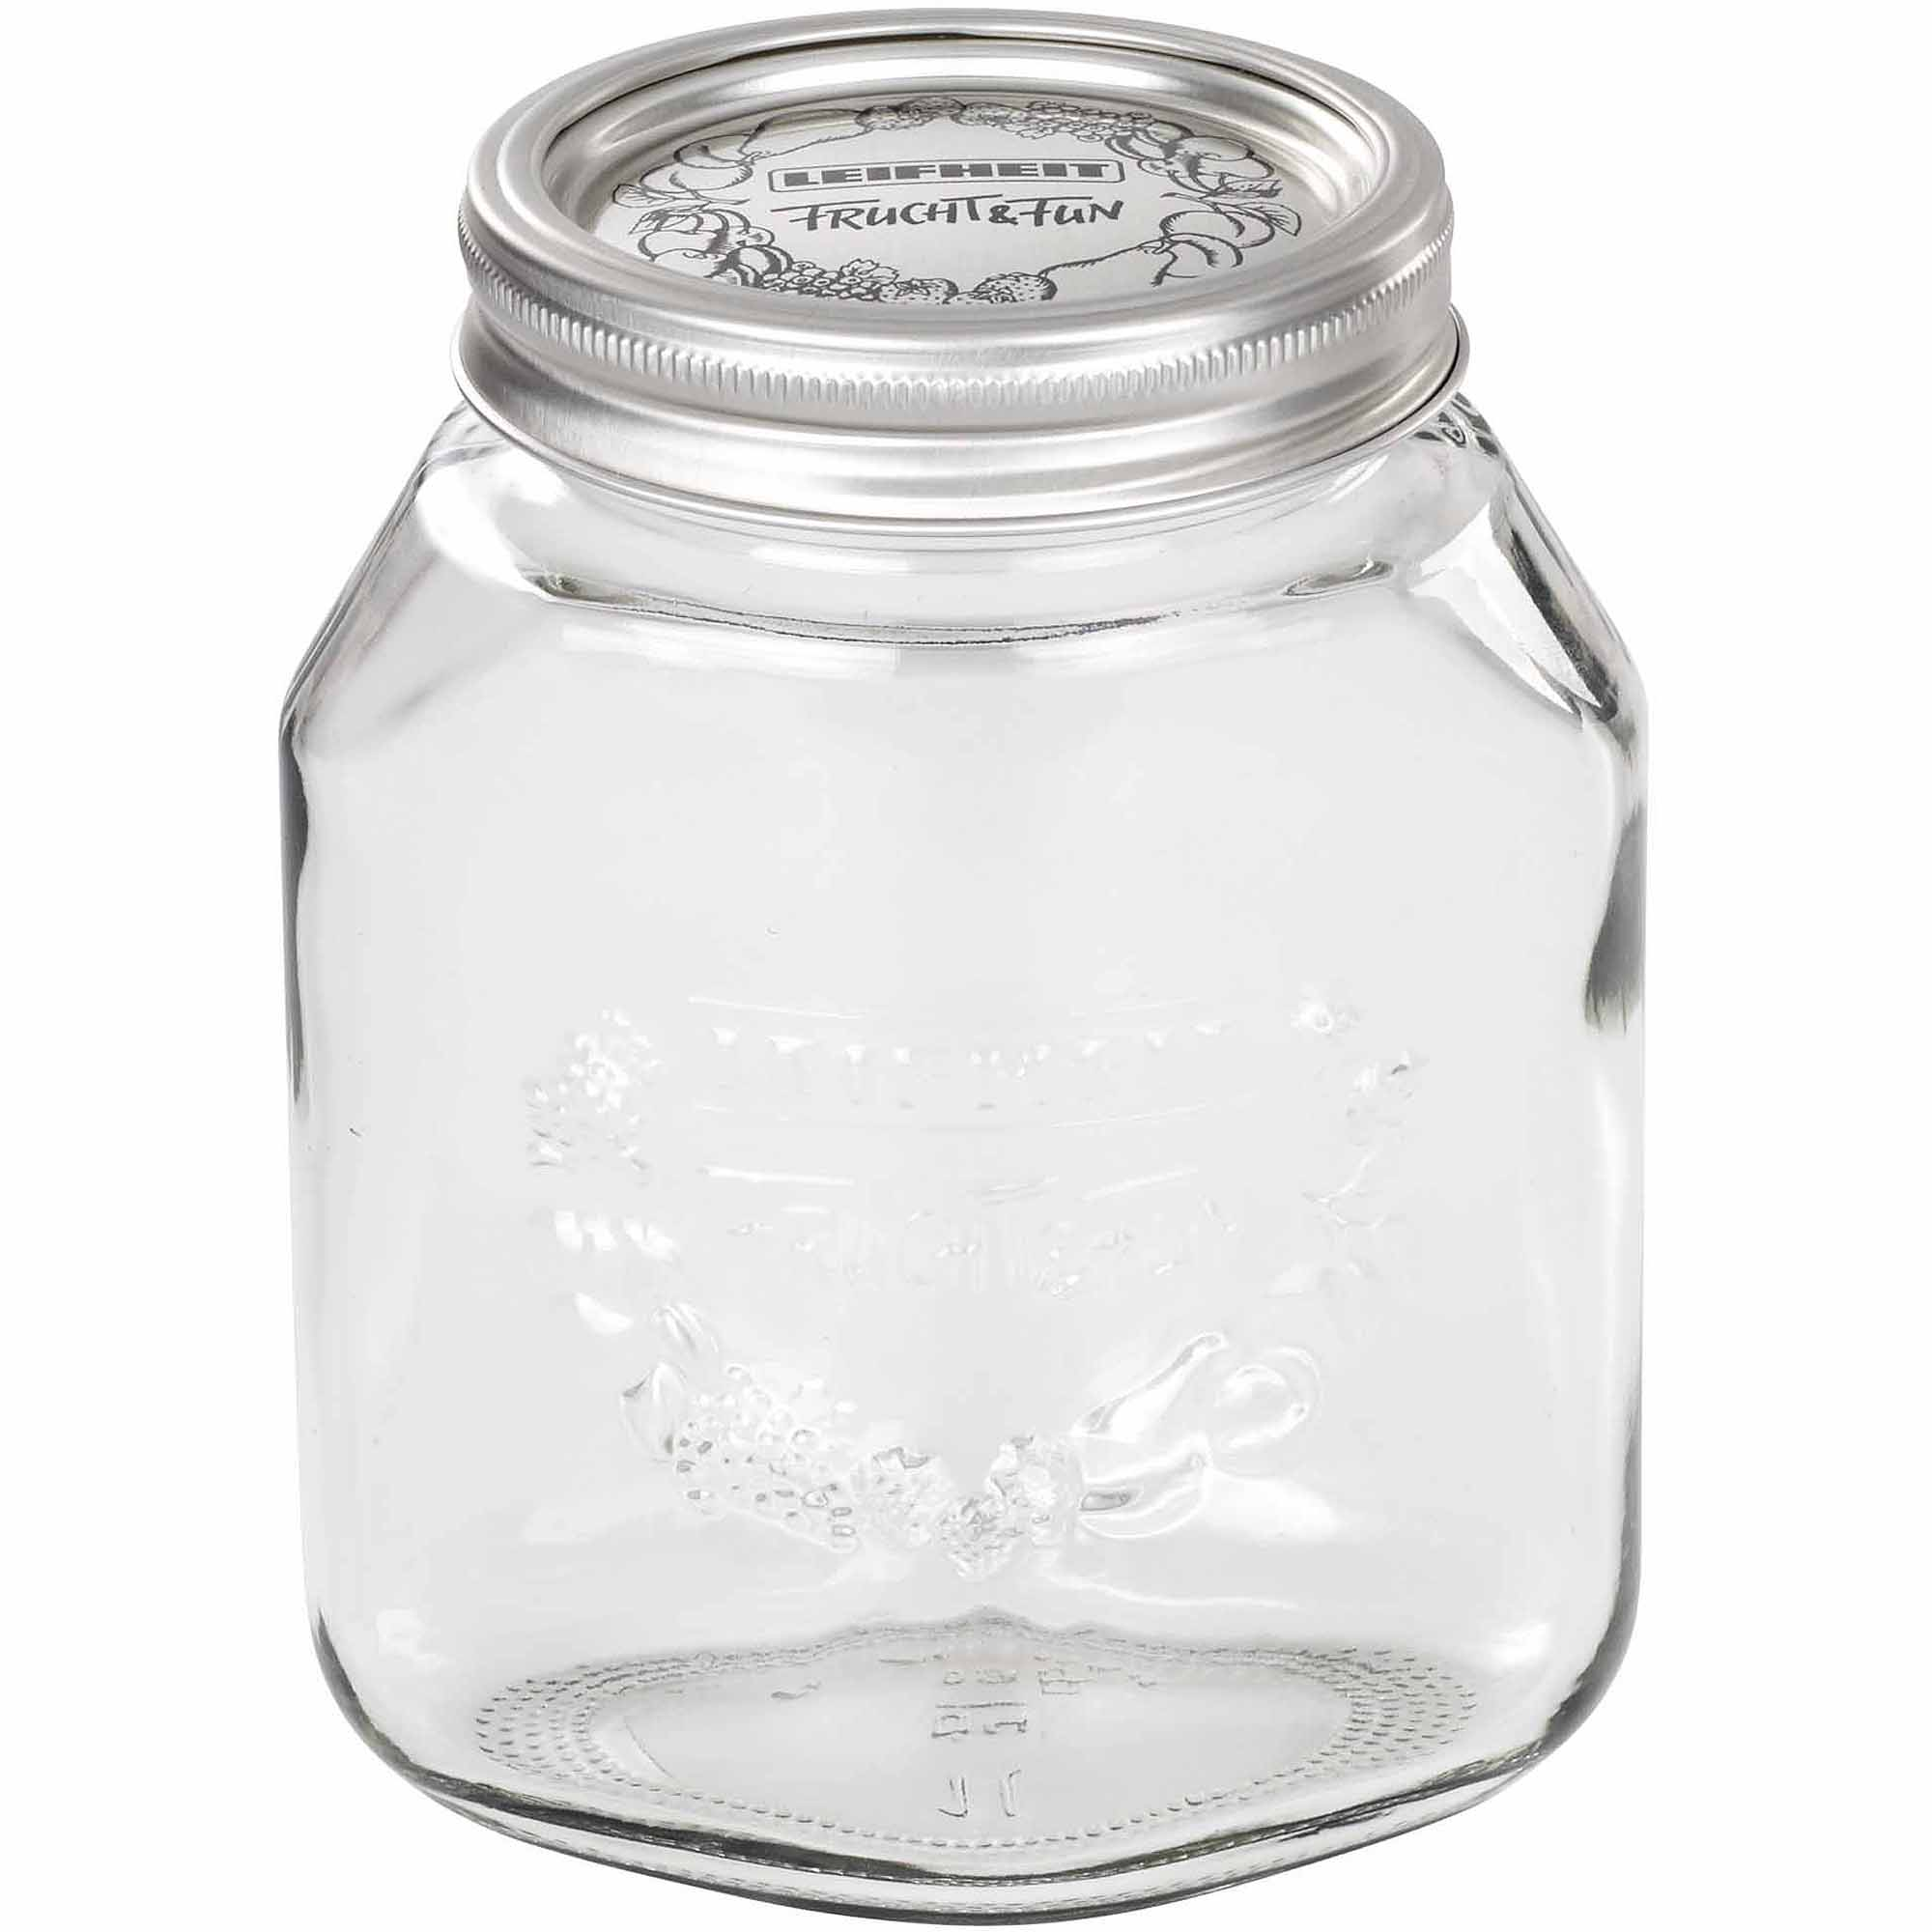 Leifheit Large 34 oz Glass Wide-Mouth Mason Jar for Canning, Set of 6, Transparent